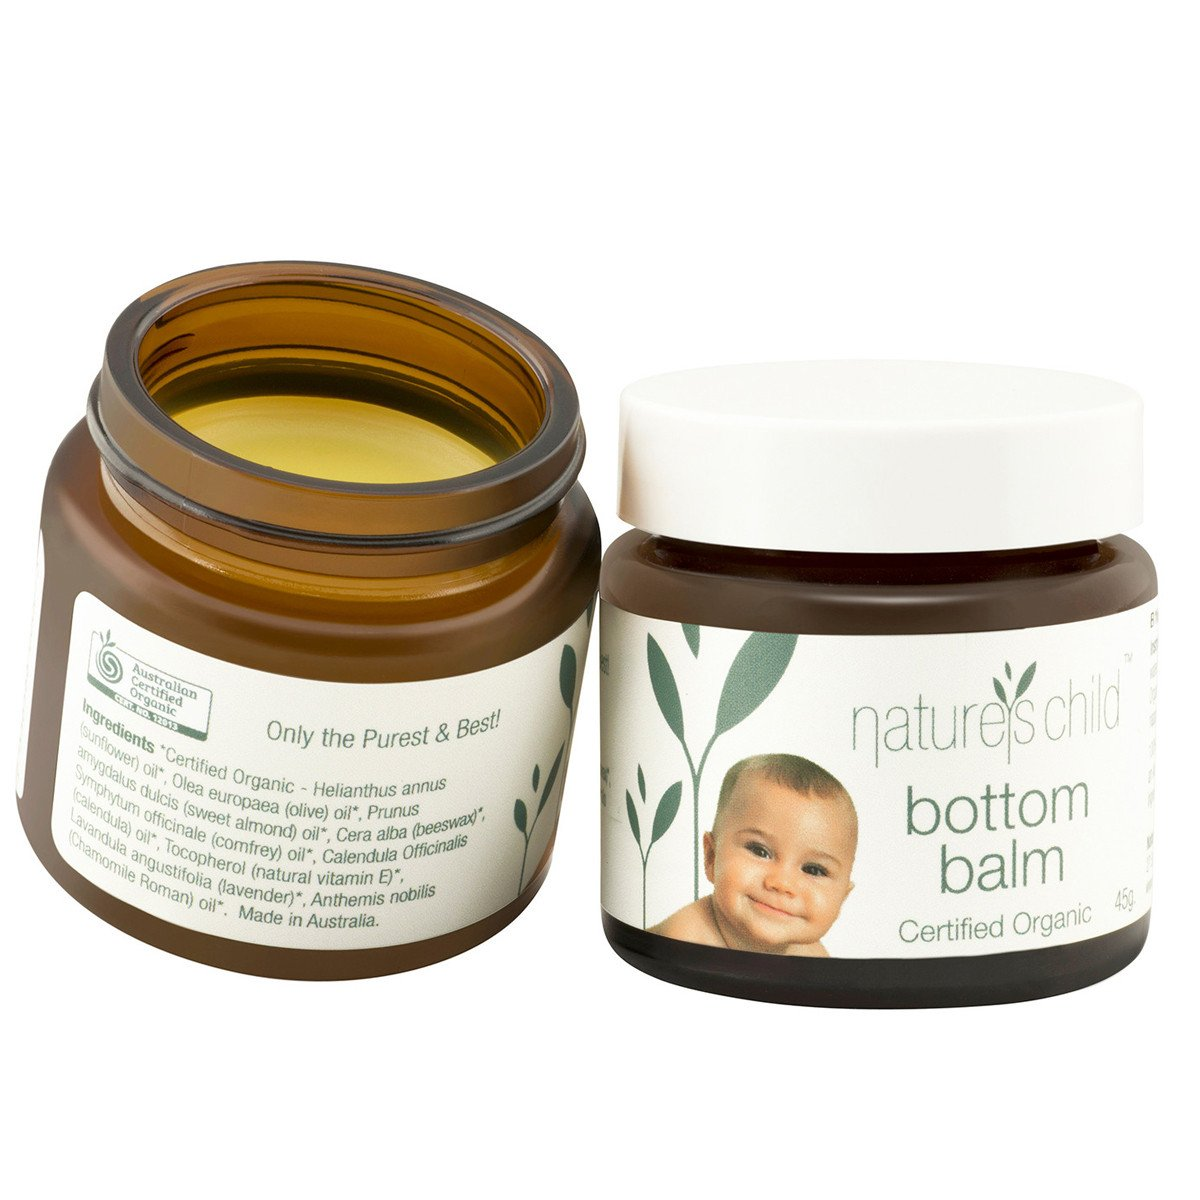 Natures Child Bottom Balm 45g Natures Child Nappy Rash Treatments at Little Earth Nest Eco Shop